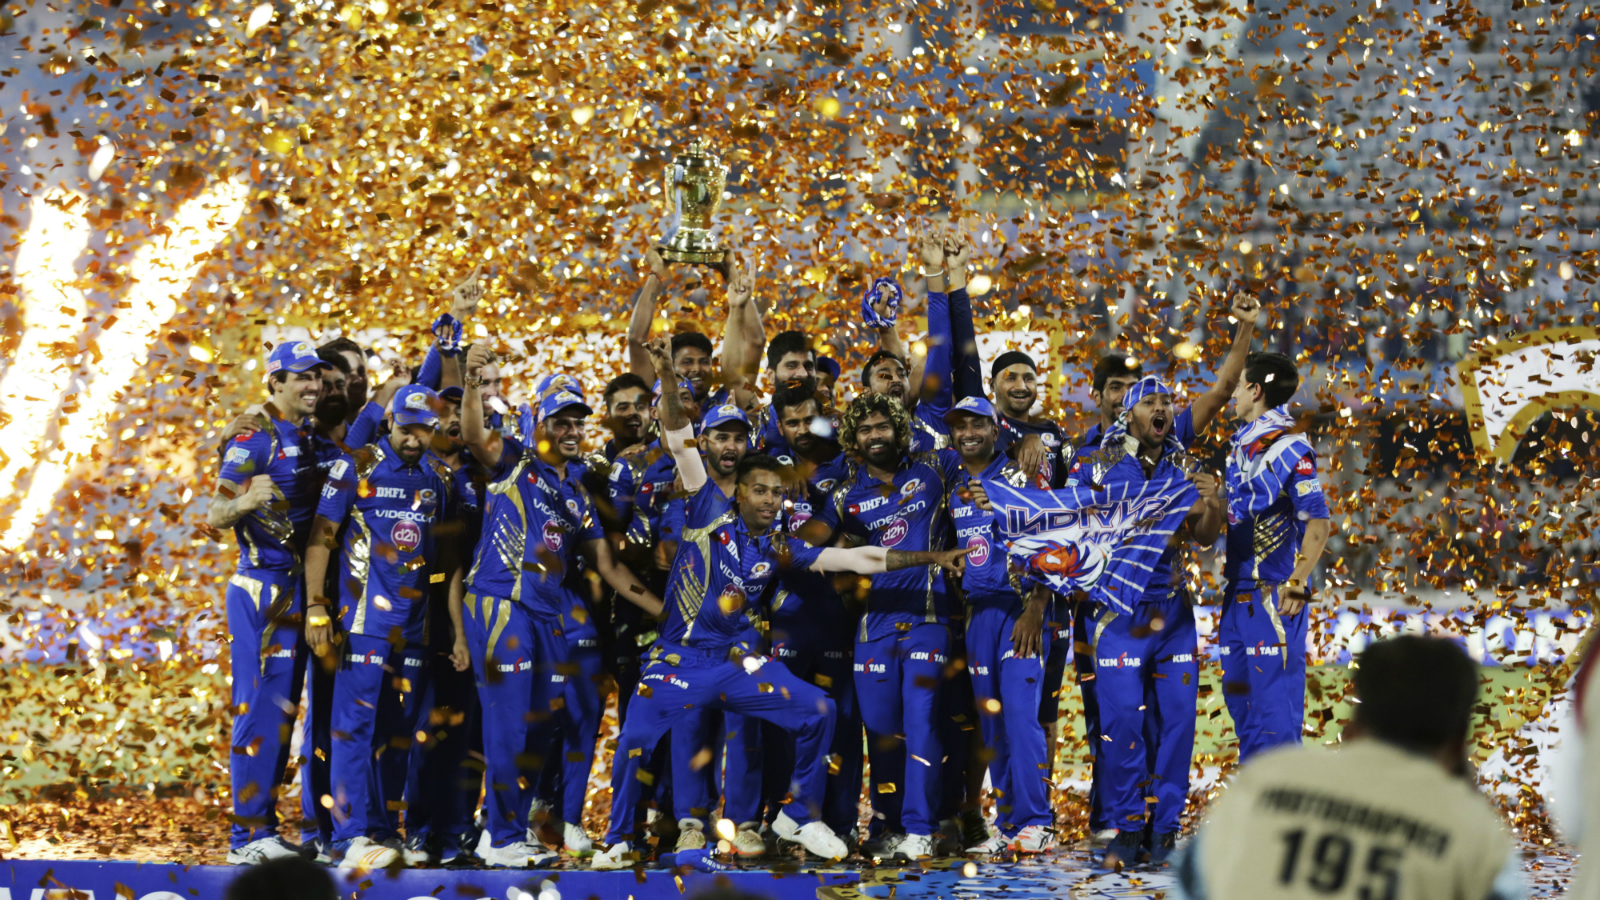 Mumbai Indians pose with trophy after wining the Indian Premier League (IPL) cricket final match against Rising Pune Supergiant in Hyderabad, India, Monday, May 22, 2017. (AP Photo/Tsering Topgyal)